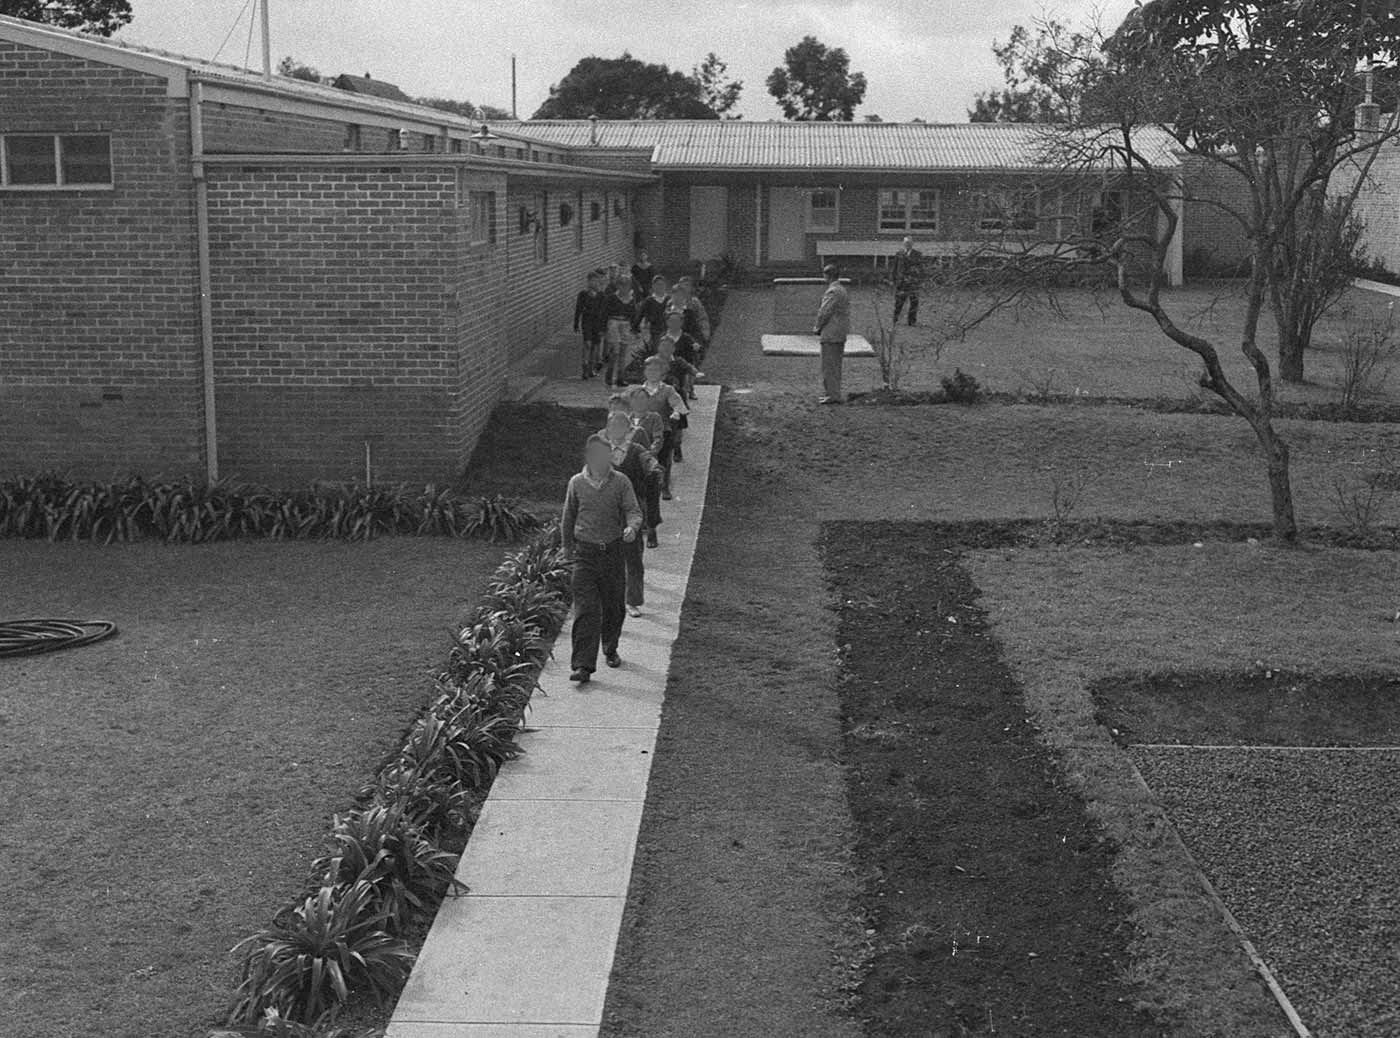 Black and white photo showing a line of boys marching along a concrete path. Two men stand to the side watching the boys. - click to view larger image